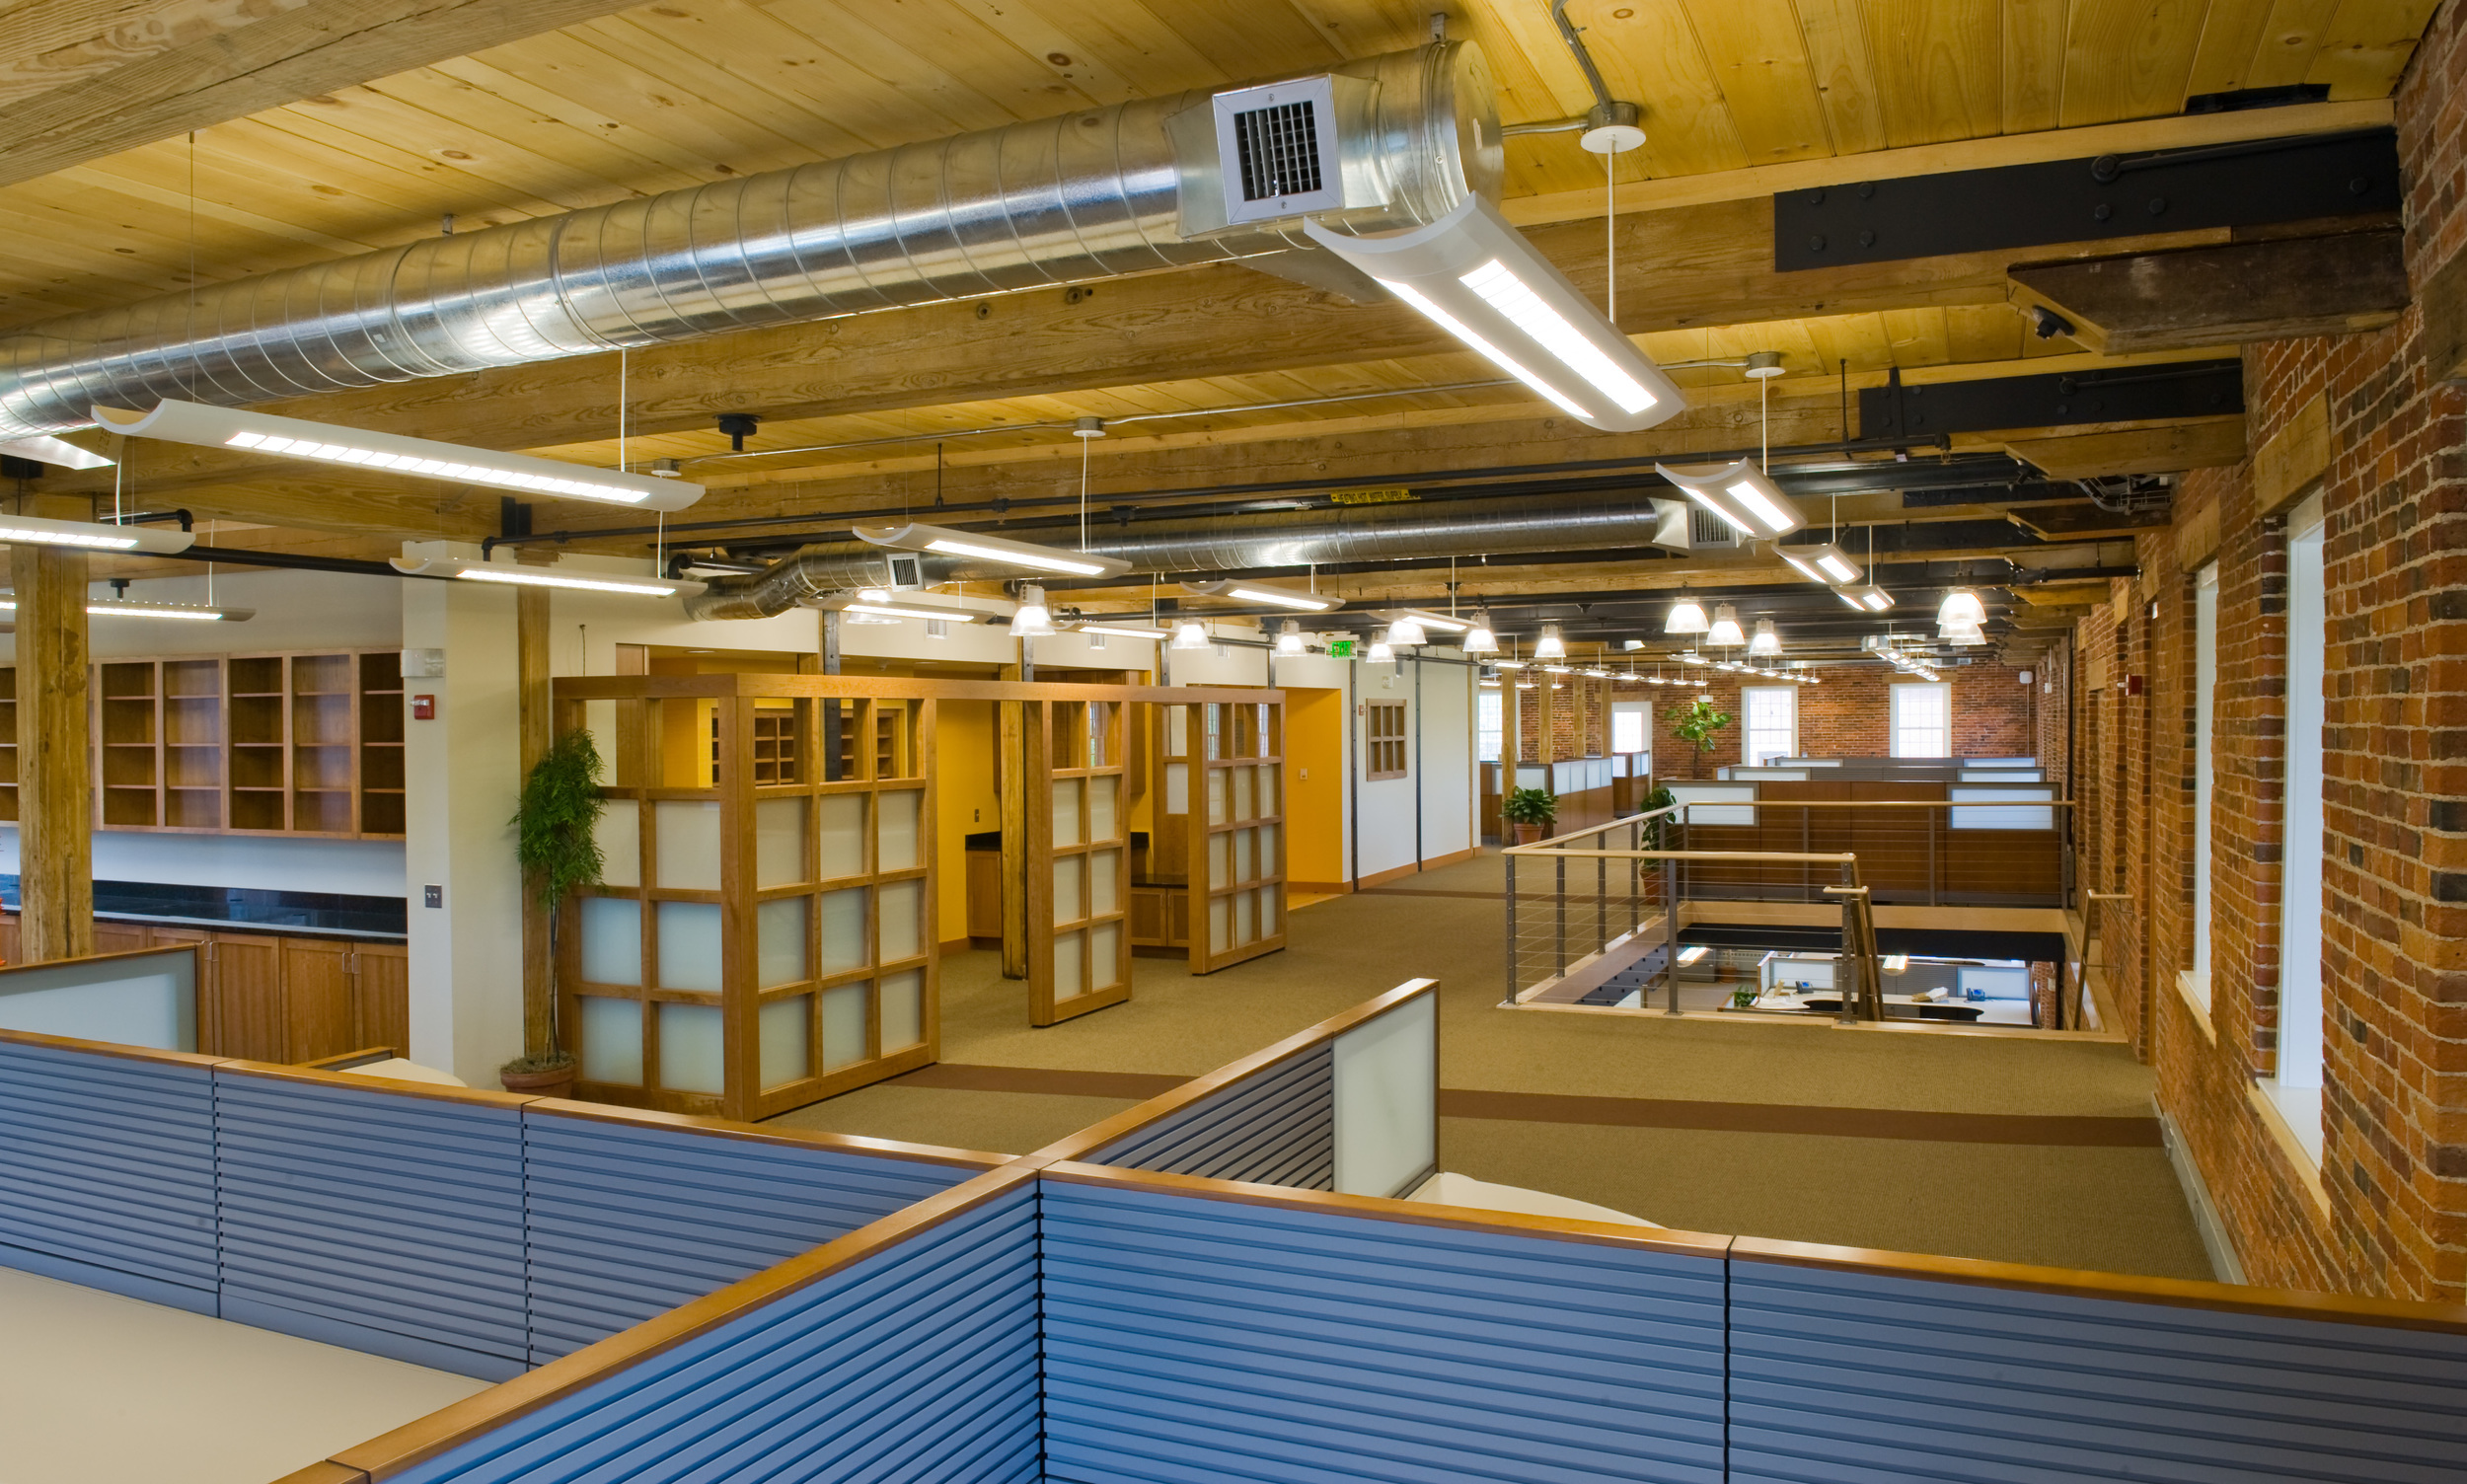 This project is 19,000 gross sf, on 2 floors including an executive suite, 2 conference rooms, company kitchen and lunchroom, server and technical services space, along with space for 70 staff members. The majority of the space is open and features an internal stair in a newly created floor opening, enhancing the feeling of collaboration.